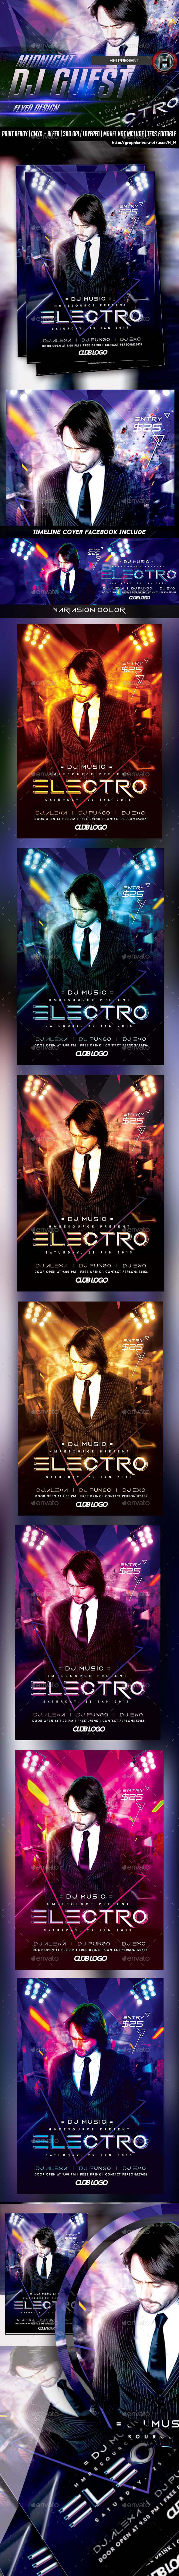 DJ ELECTRO GUEST FLYER - Events Flyers